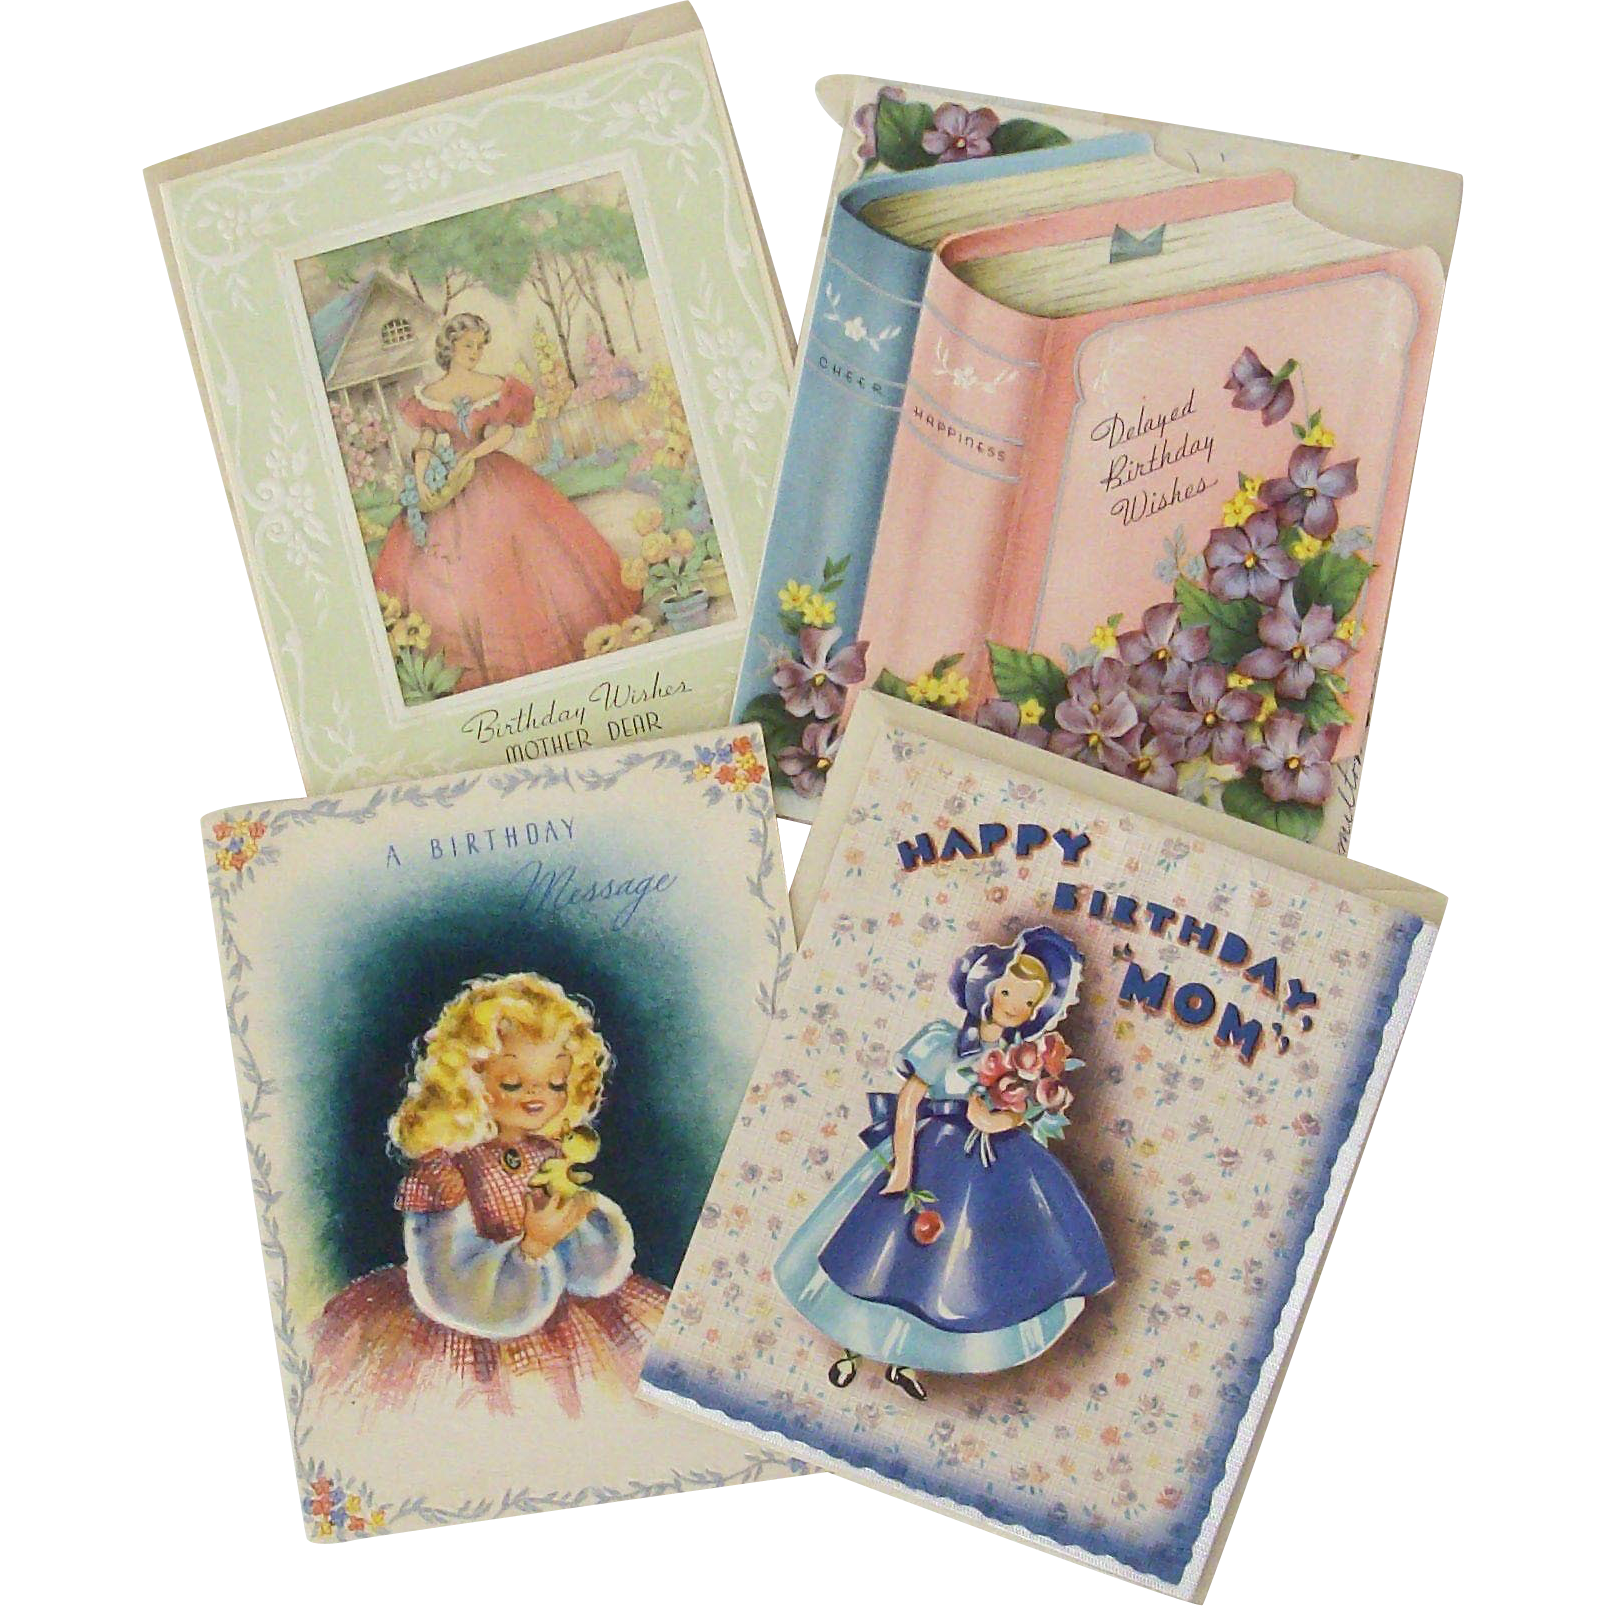 Birthday Wishes From Mid-Century - Set of Four